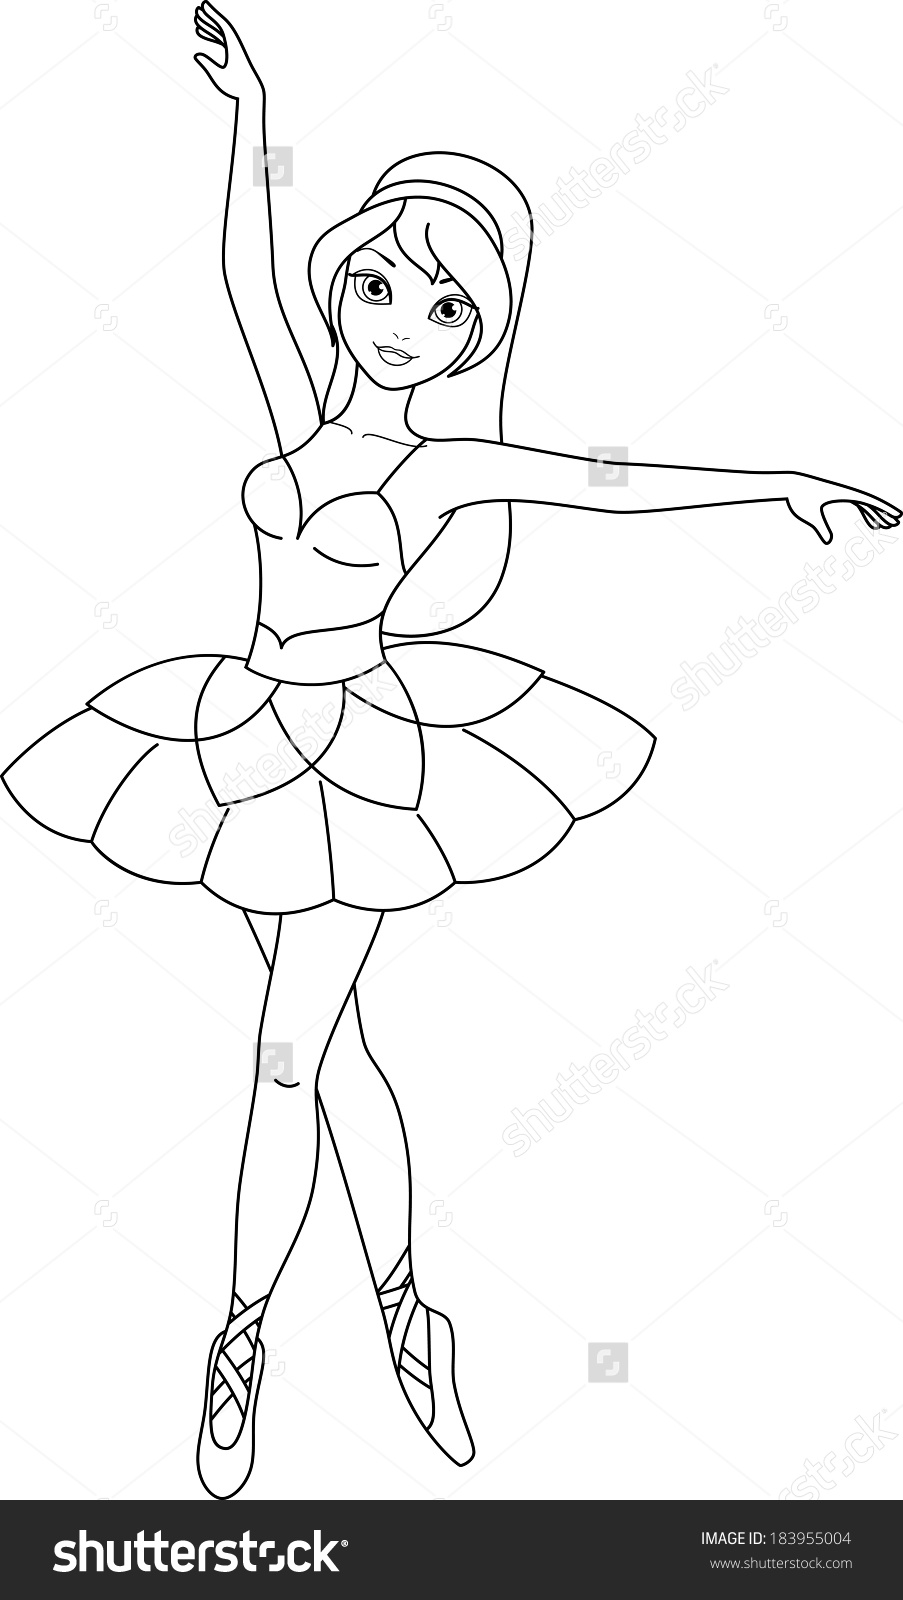 903x1600 Ballerina Coloring Pages Printable Image Colouring Sheets